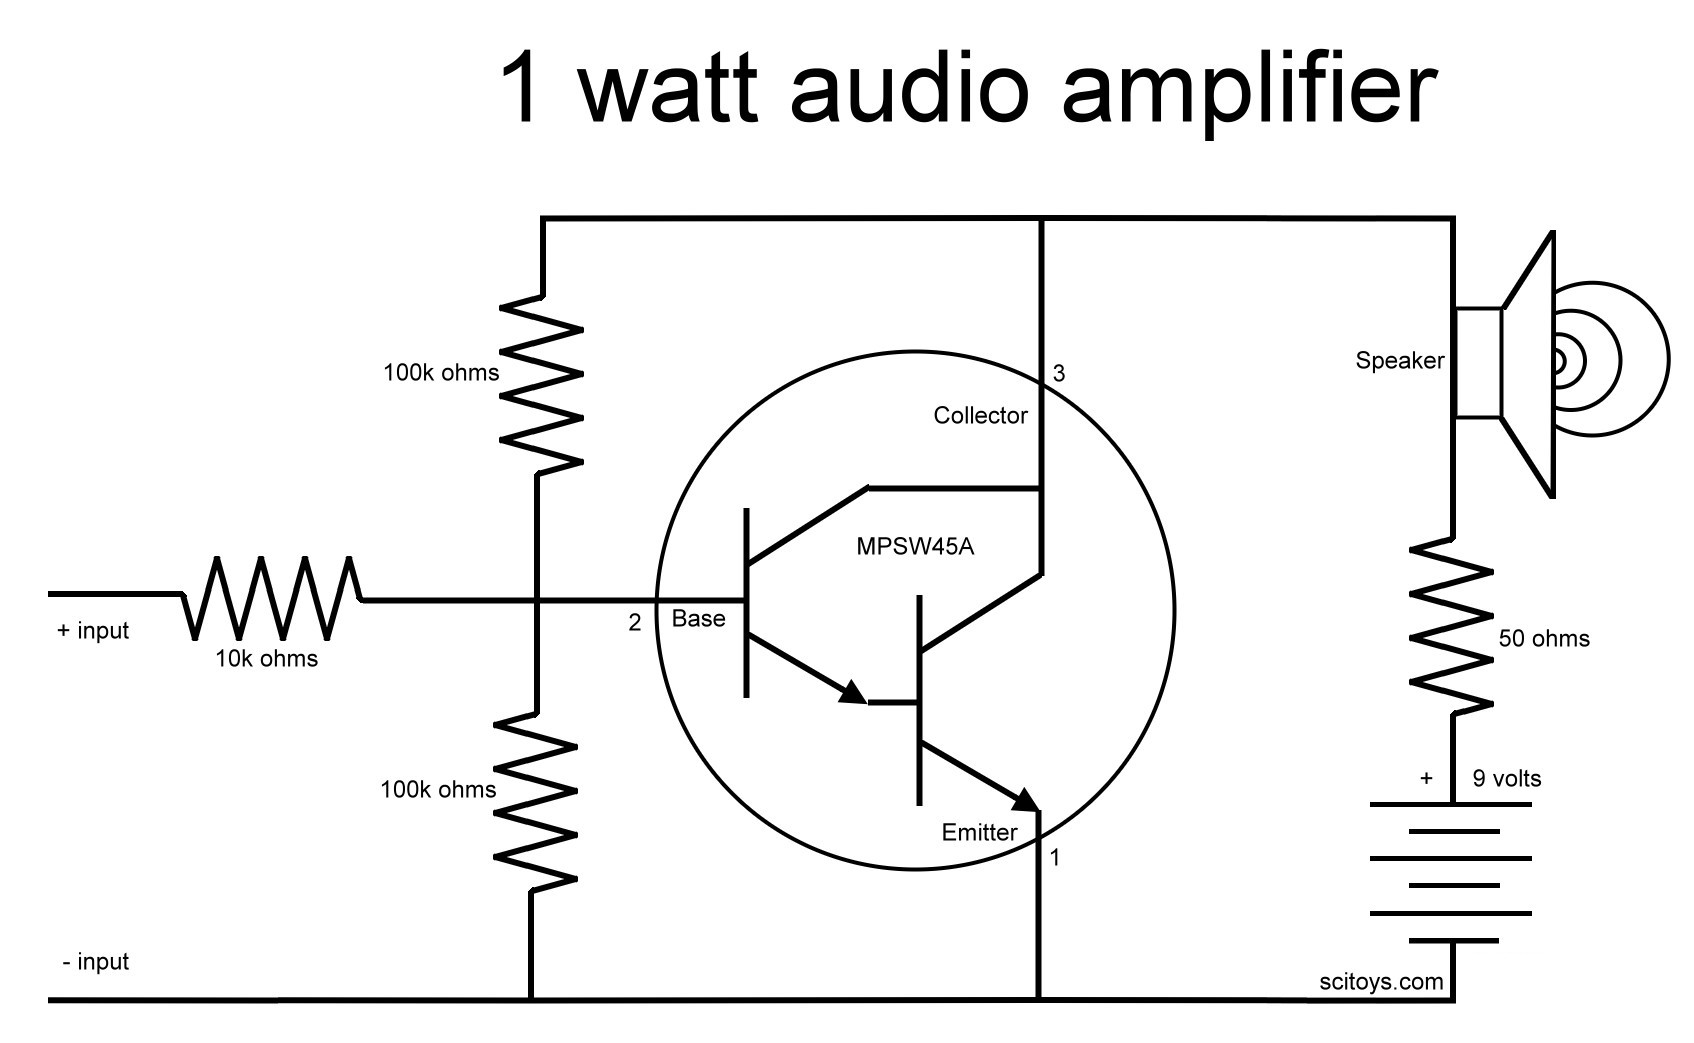 A Simple 1 Watt Audio Amplifier